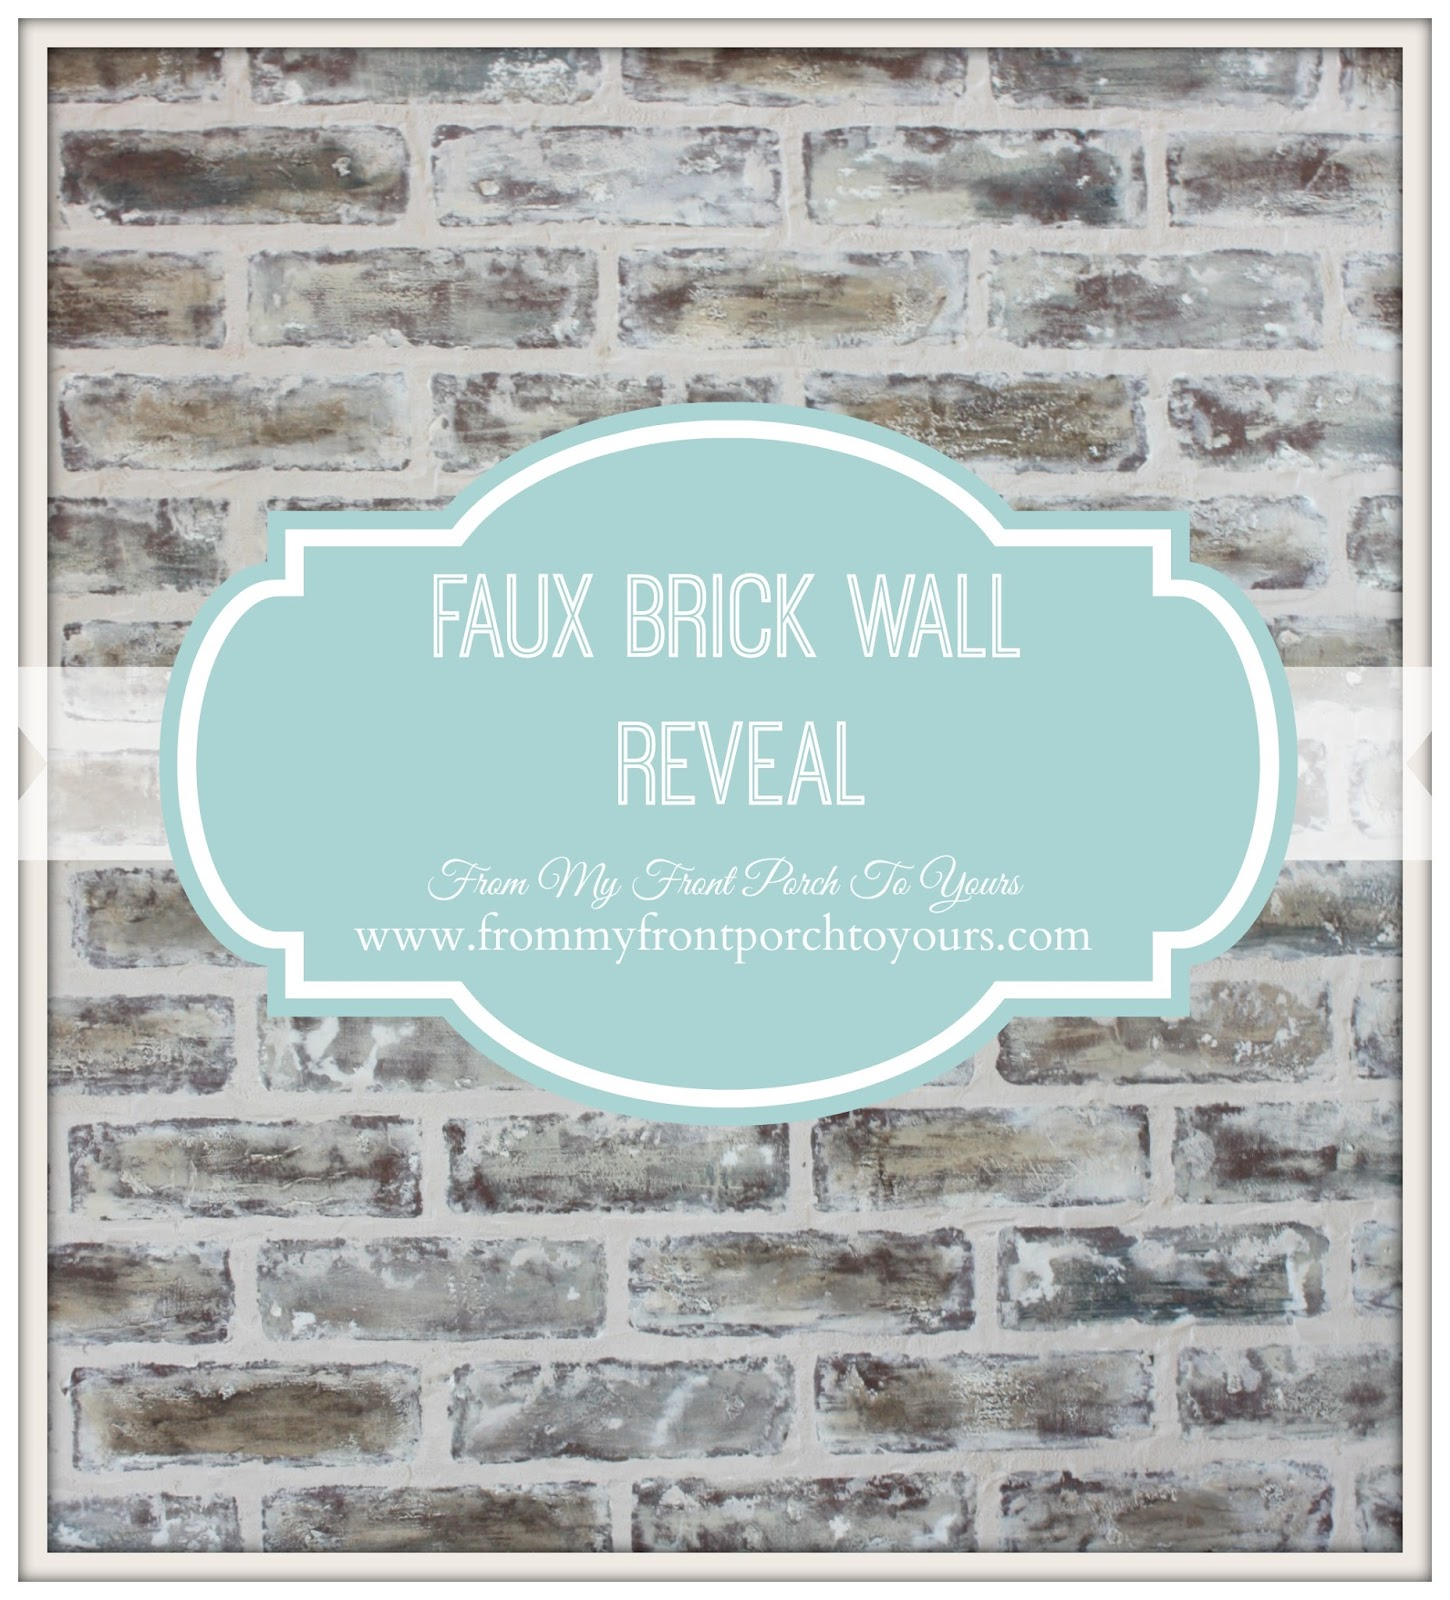 Faux painting furniture ideas - From My Front Porch To Yours Diy Faux Brick Wall Reveal